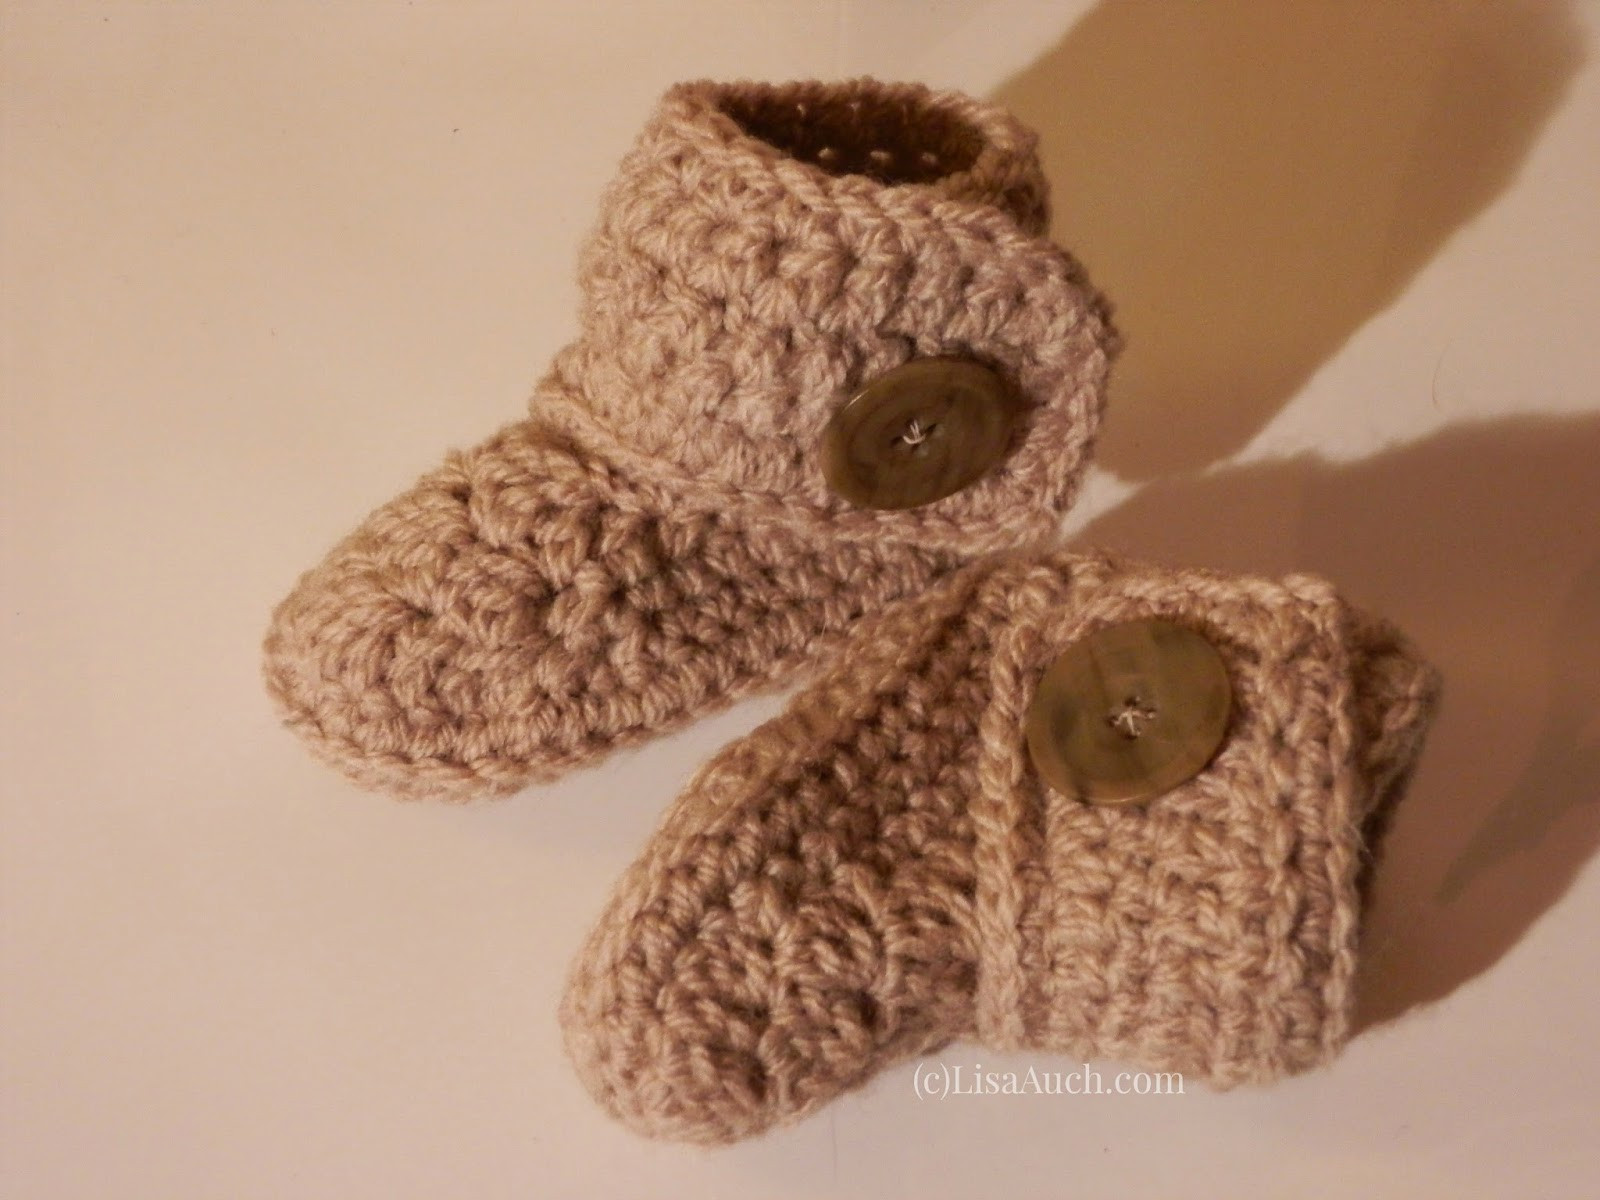 Crochet Baby Booties Best Of Free Crochet Patterns and Designs by Lisaauch Free Of Crochet Baby Booties Fresh Crochet Baby Mary Jane Booties Free Patterns